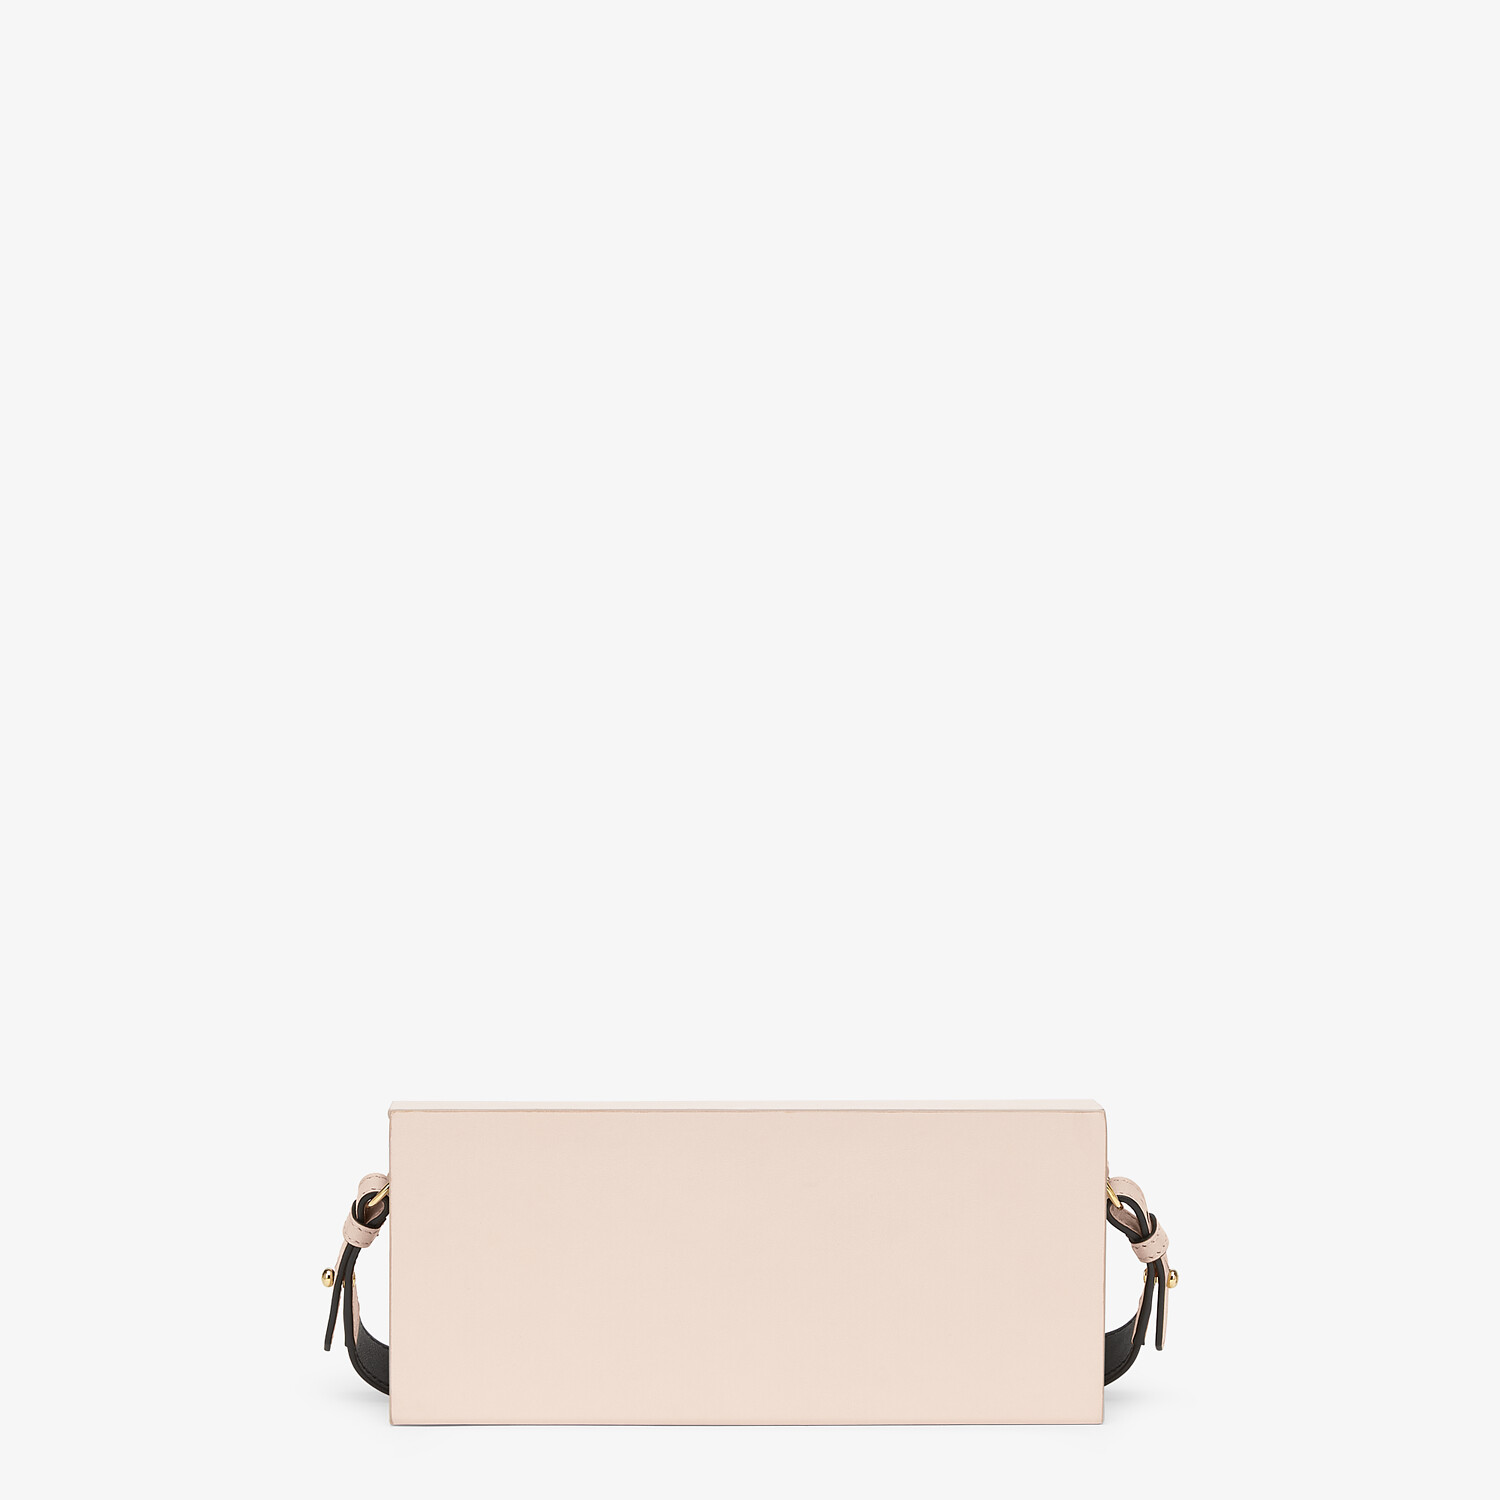 FENDI HORIZONTAL BOX - Pink leather bag - view 3 detail